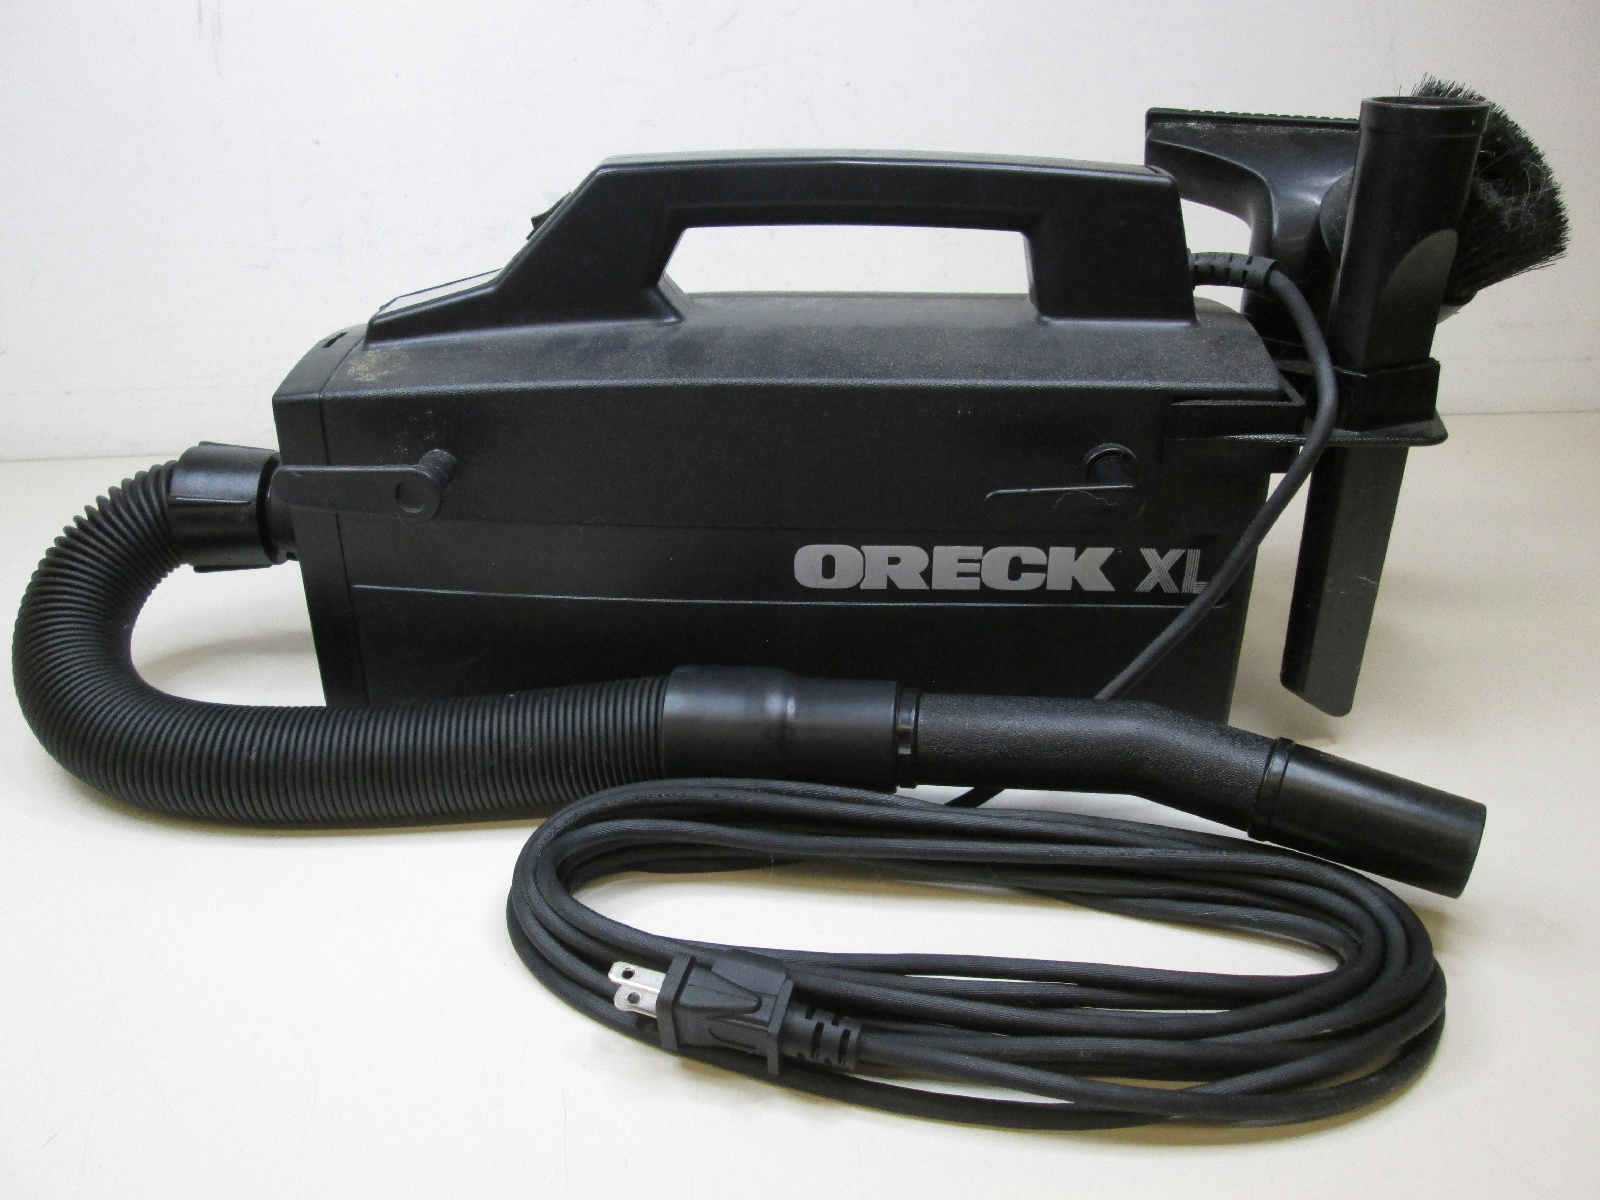 Oreck Xl Type 3 Bb870 Ad Compact Handheld Vacuum Cleaner